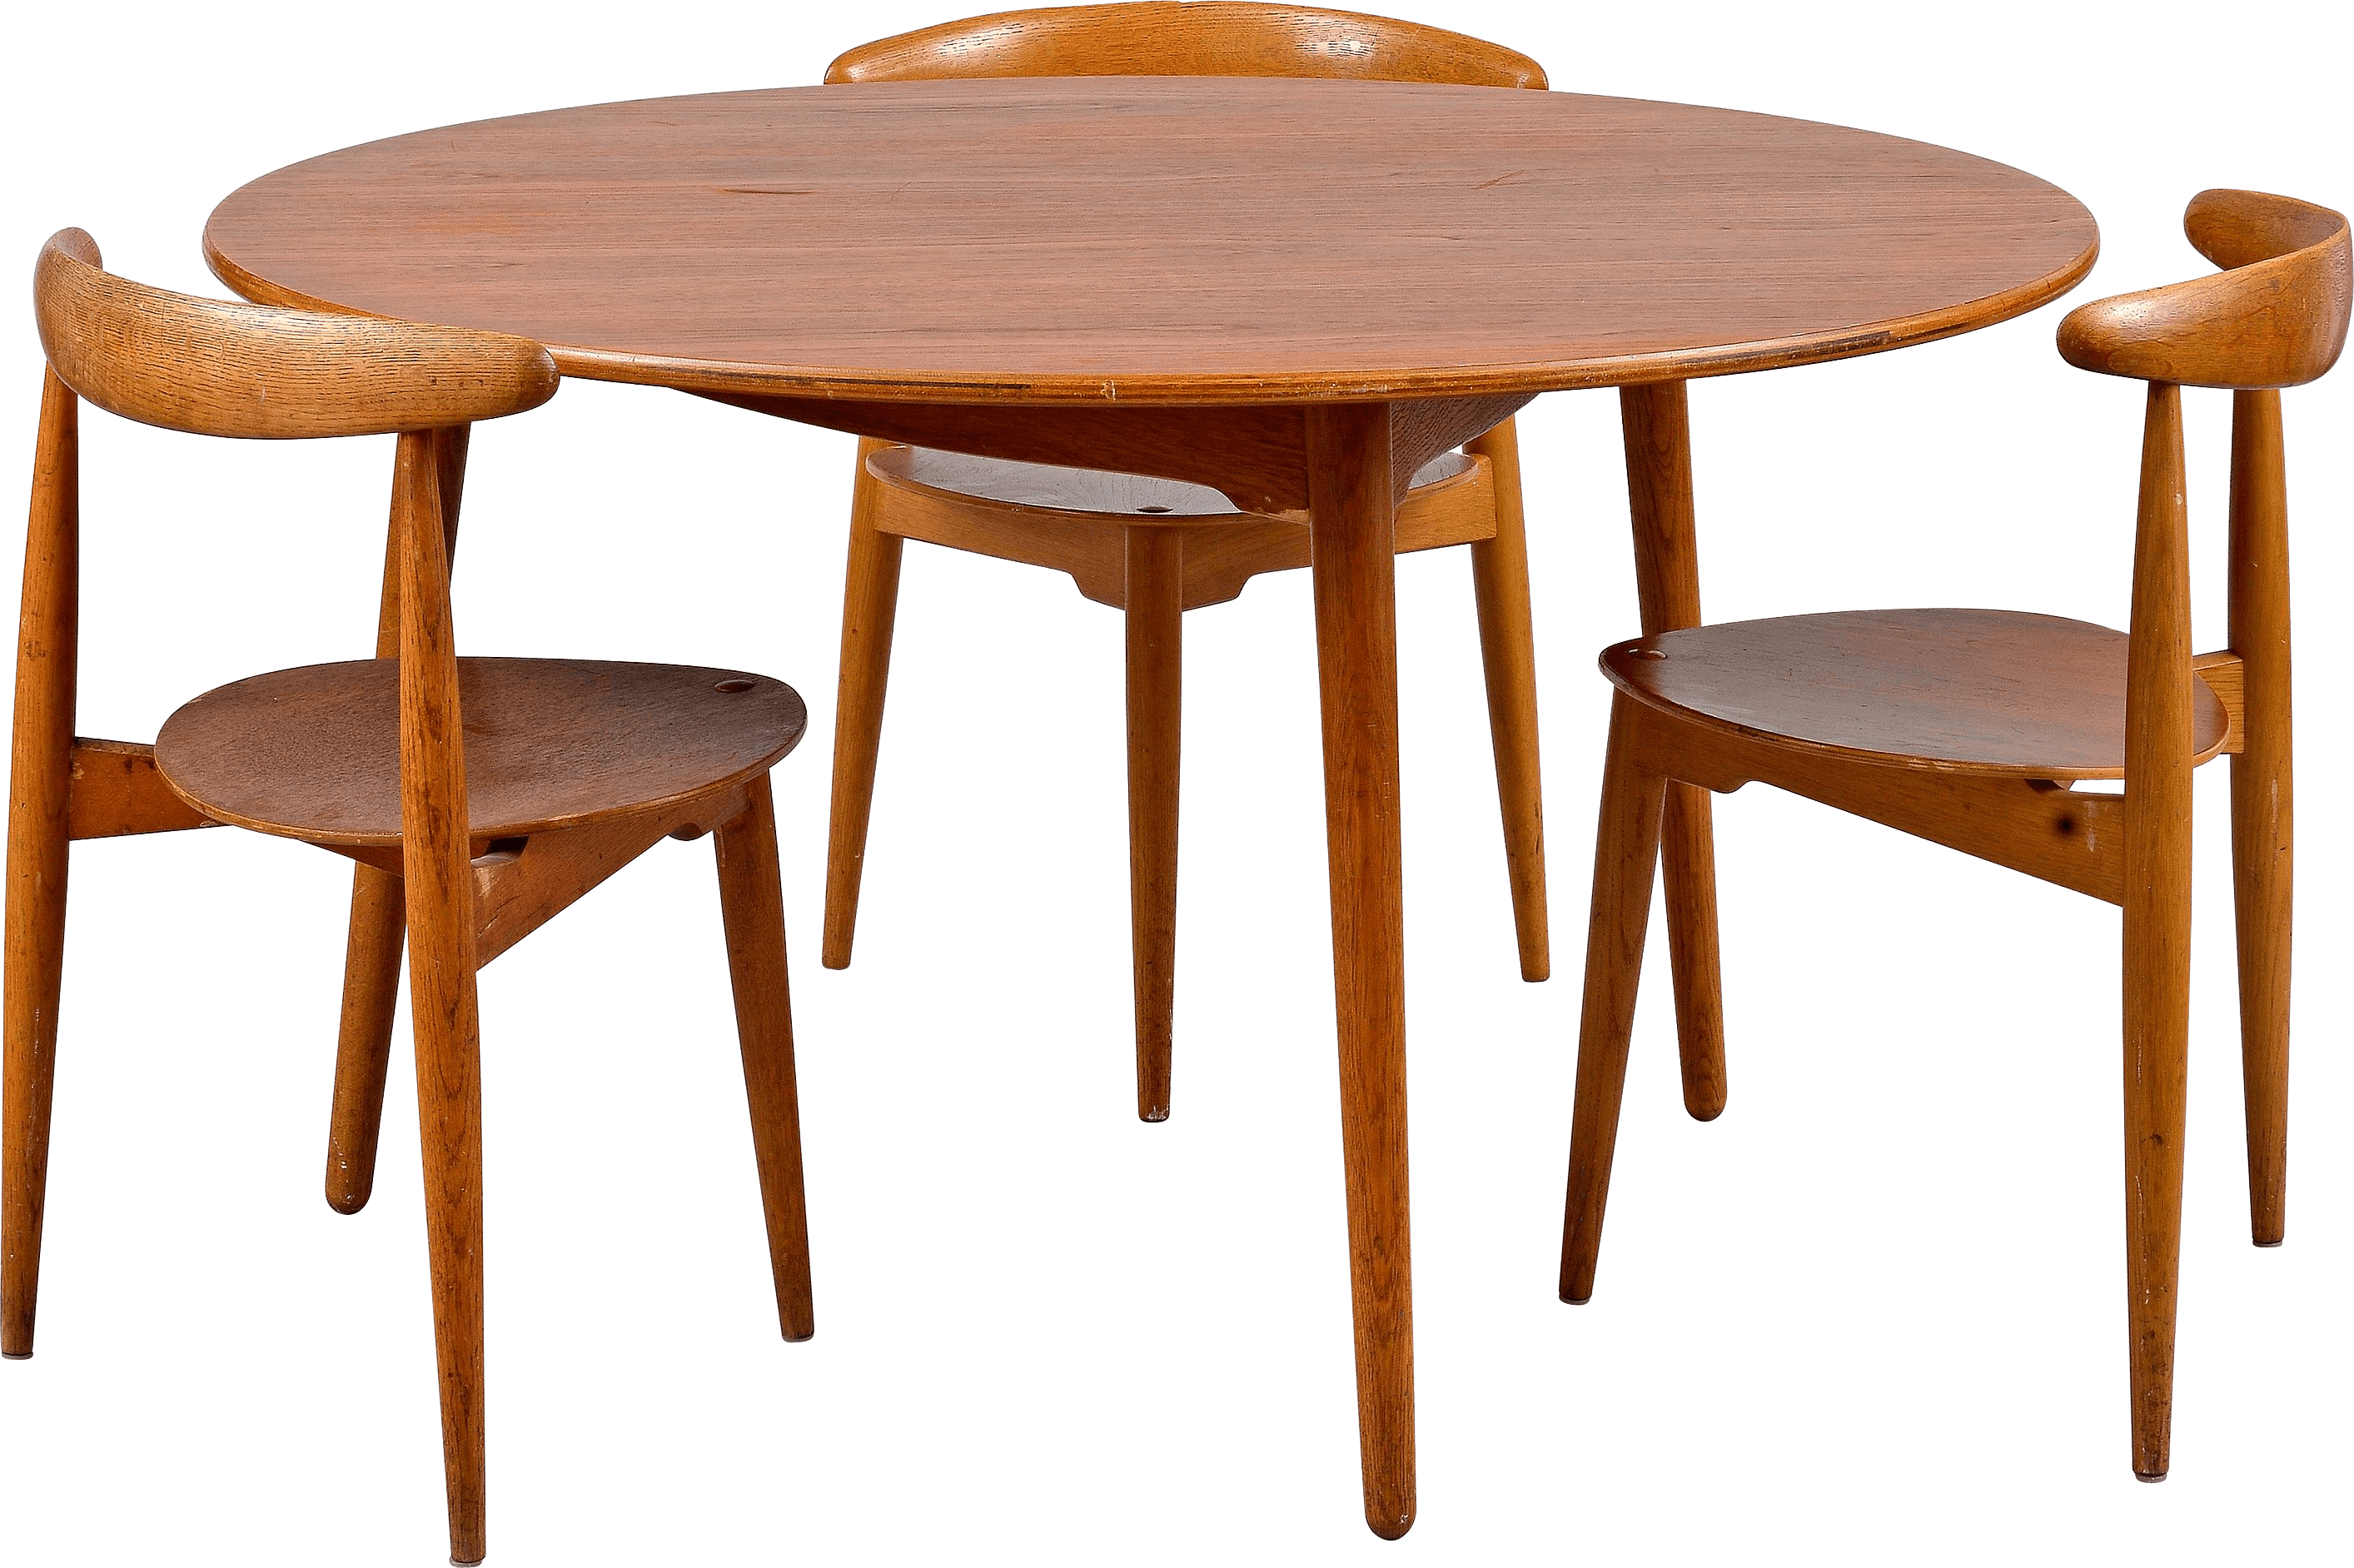 Chairs And Table Transparent Png Stickpng Over 200 angles available for each 3d object, rotate and download. stickpng